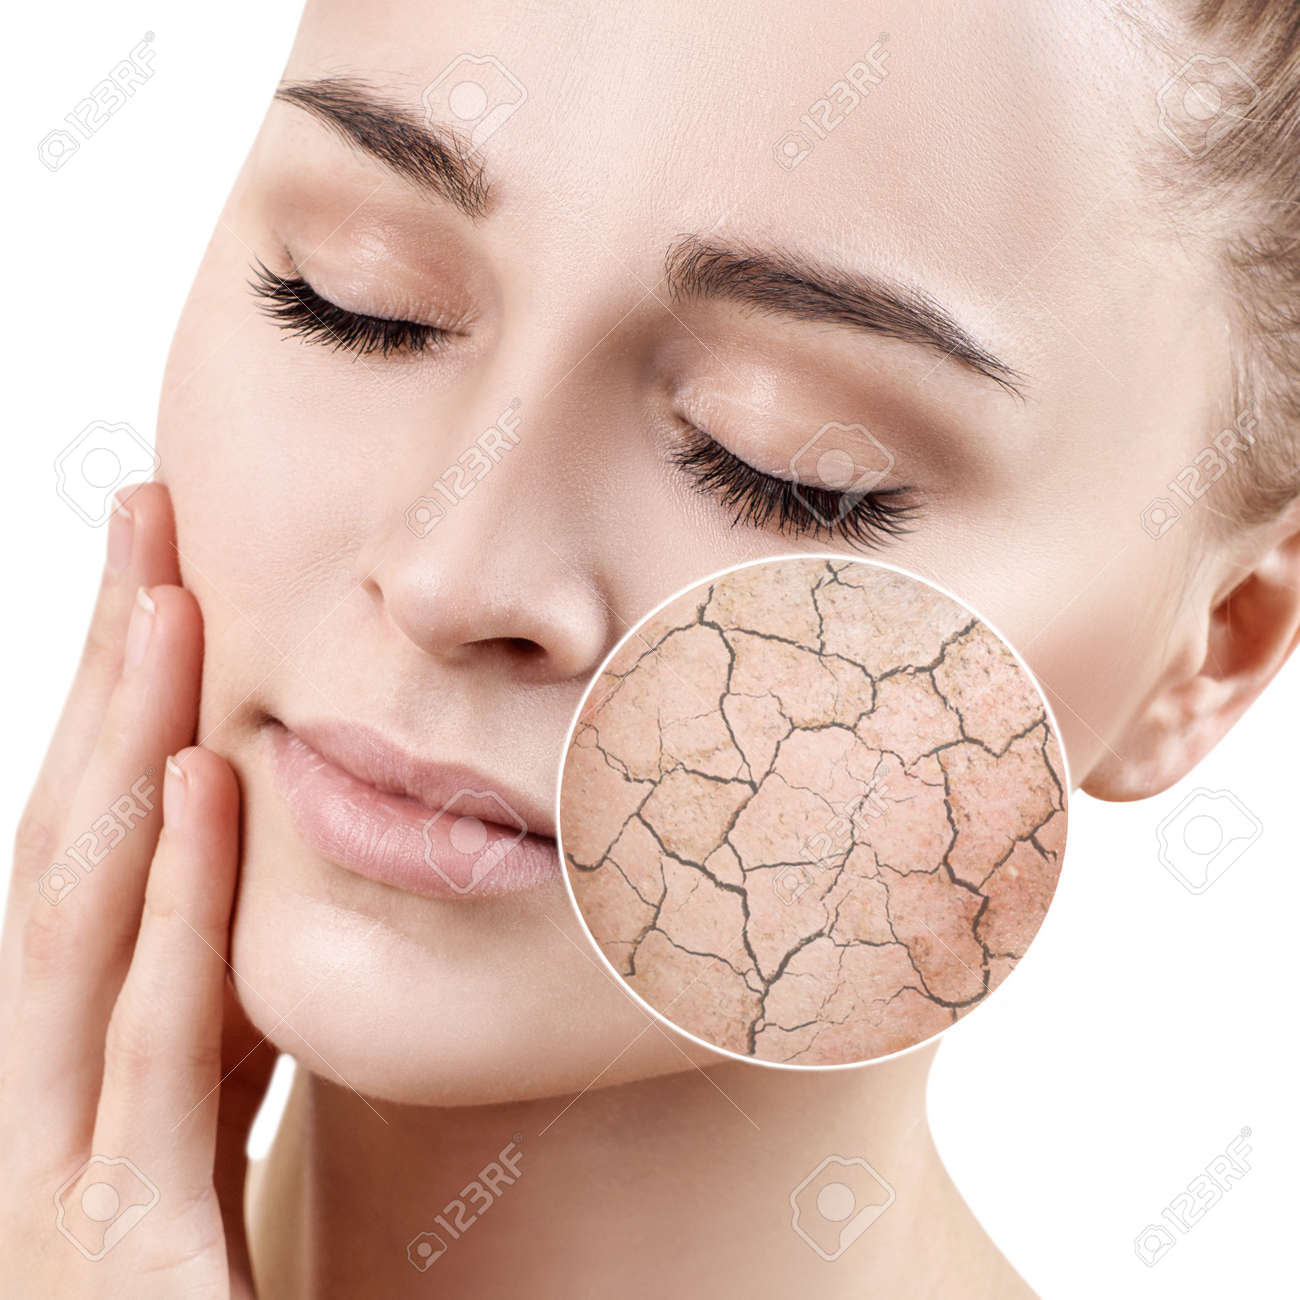 Zoom circle shows dry facial skin before moistening. - 99942119